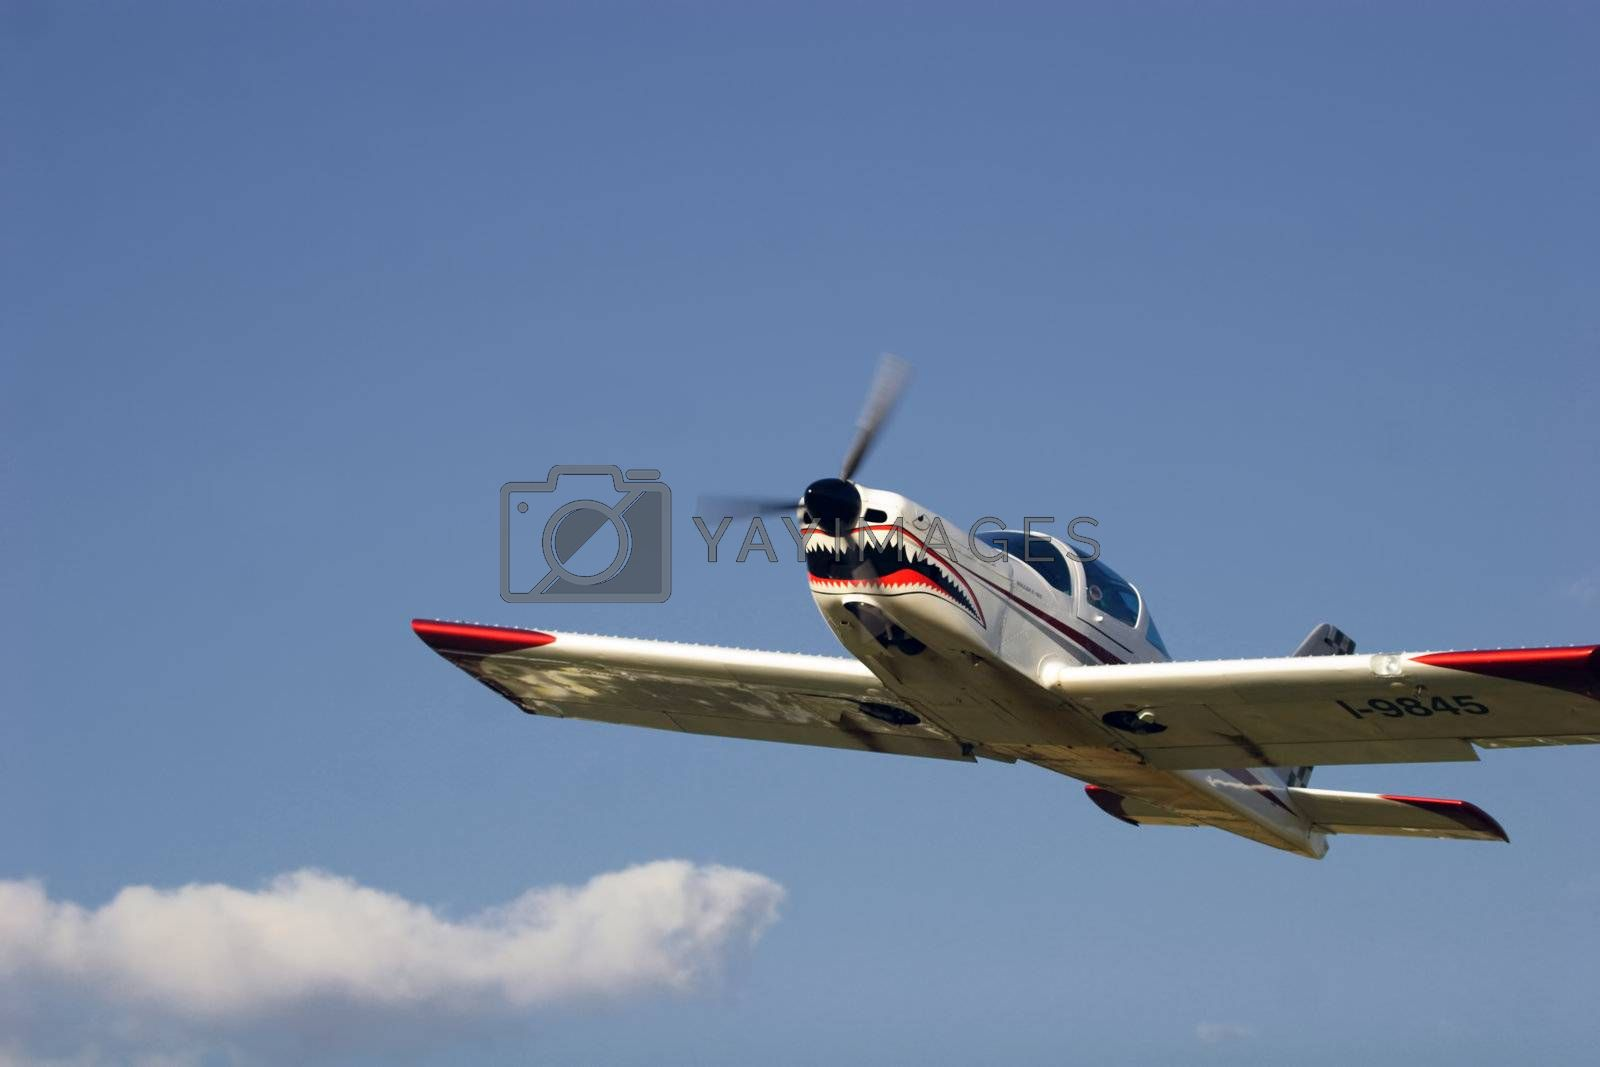 Air, Air-Show, Airplane, Airshow, Aviation, Blue, Fast, Flight, Fly, Hornet, Jet, Military,  Perfection, Performance, Precision, Show, Sky, Team, airplane, biplane,